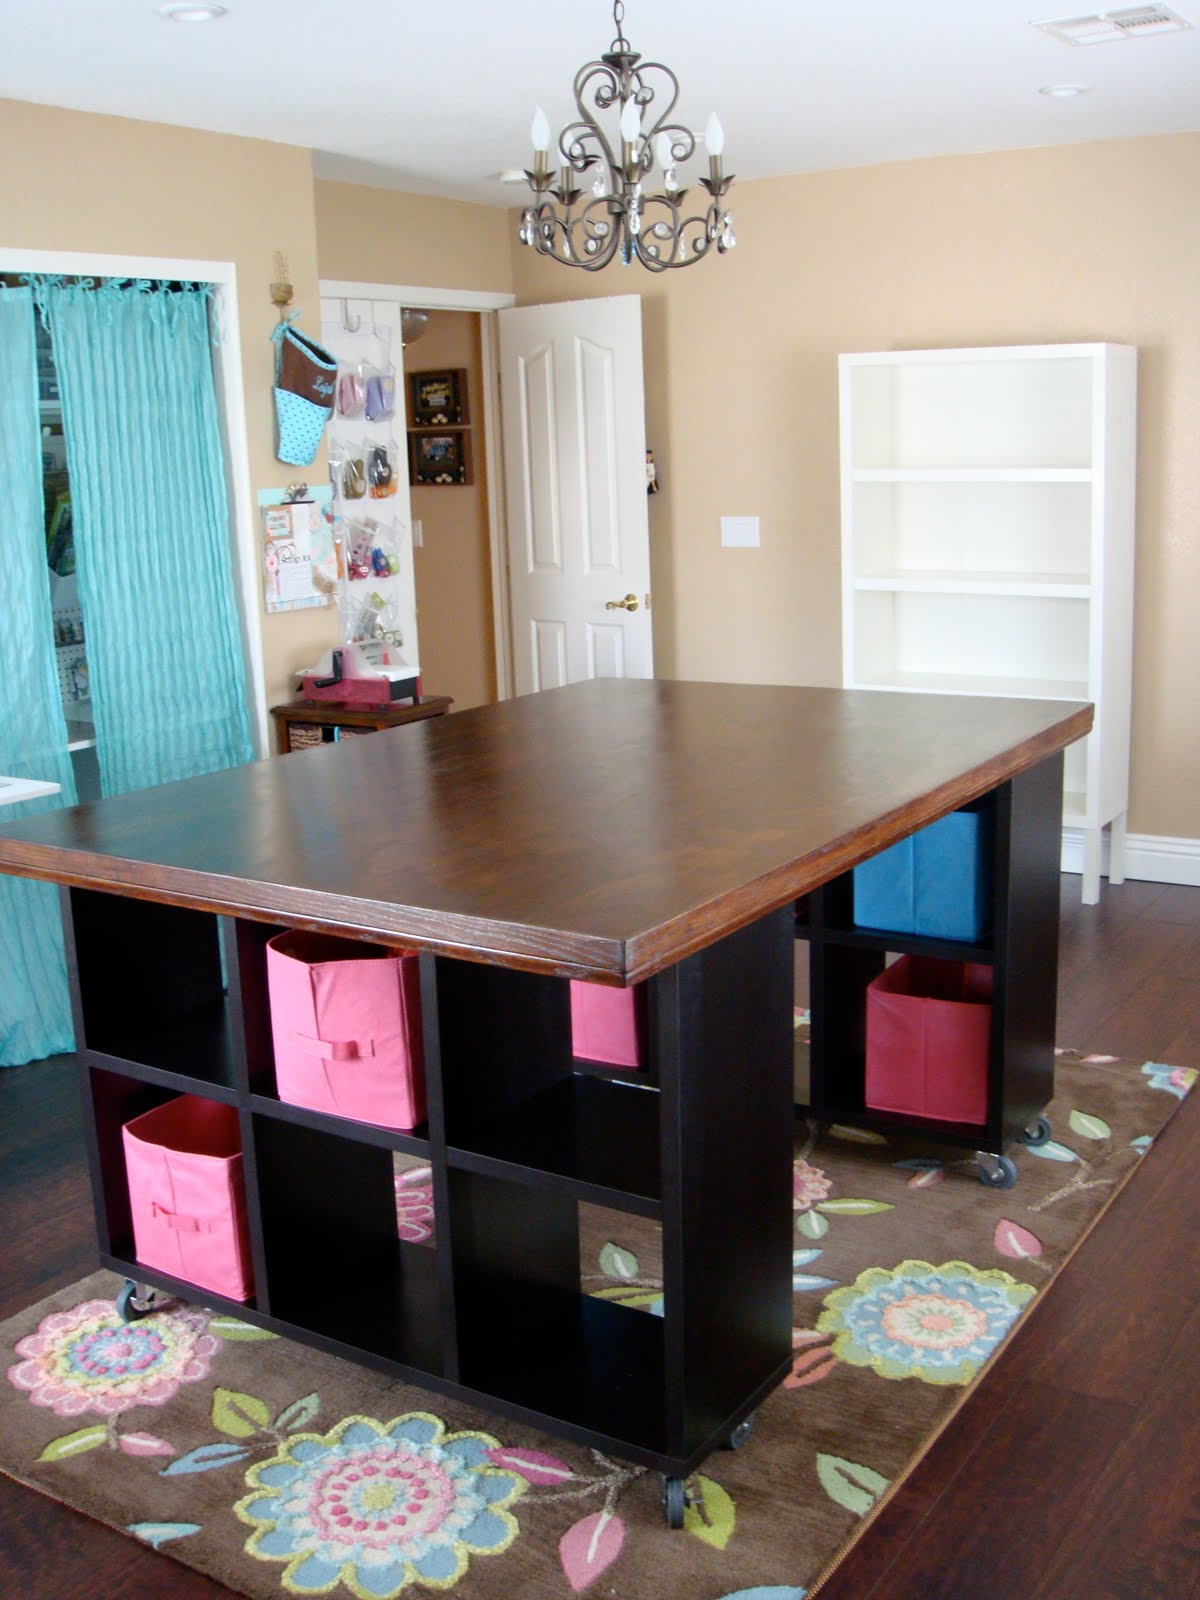 craft room ideas bedford collection. Craft Room Ideas Bedford Collection U